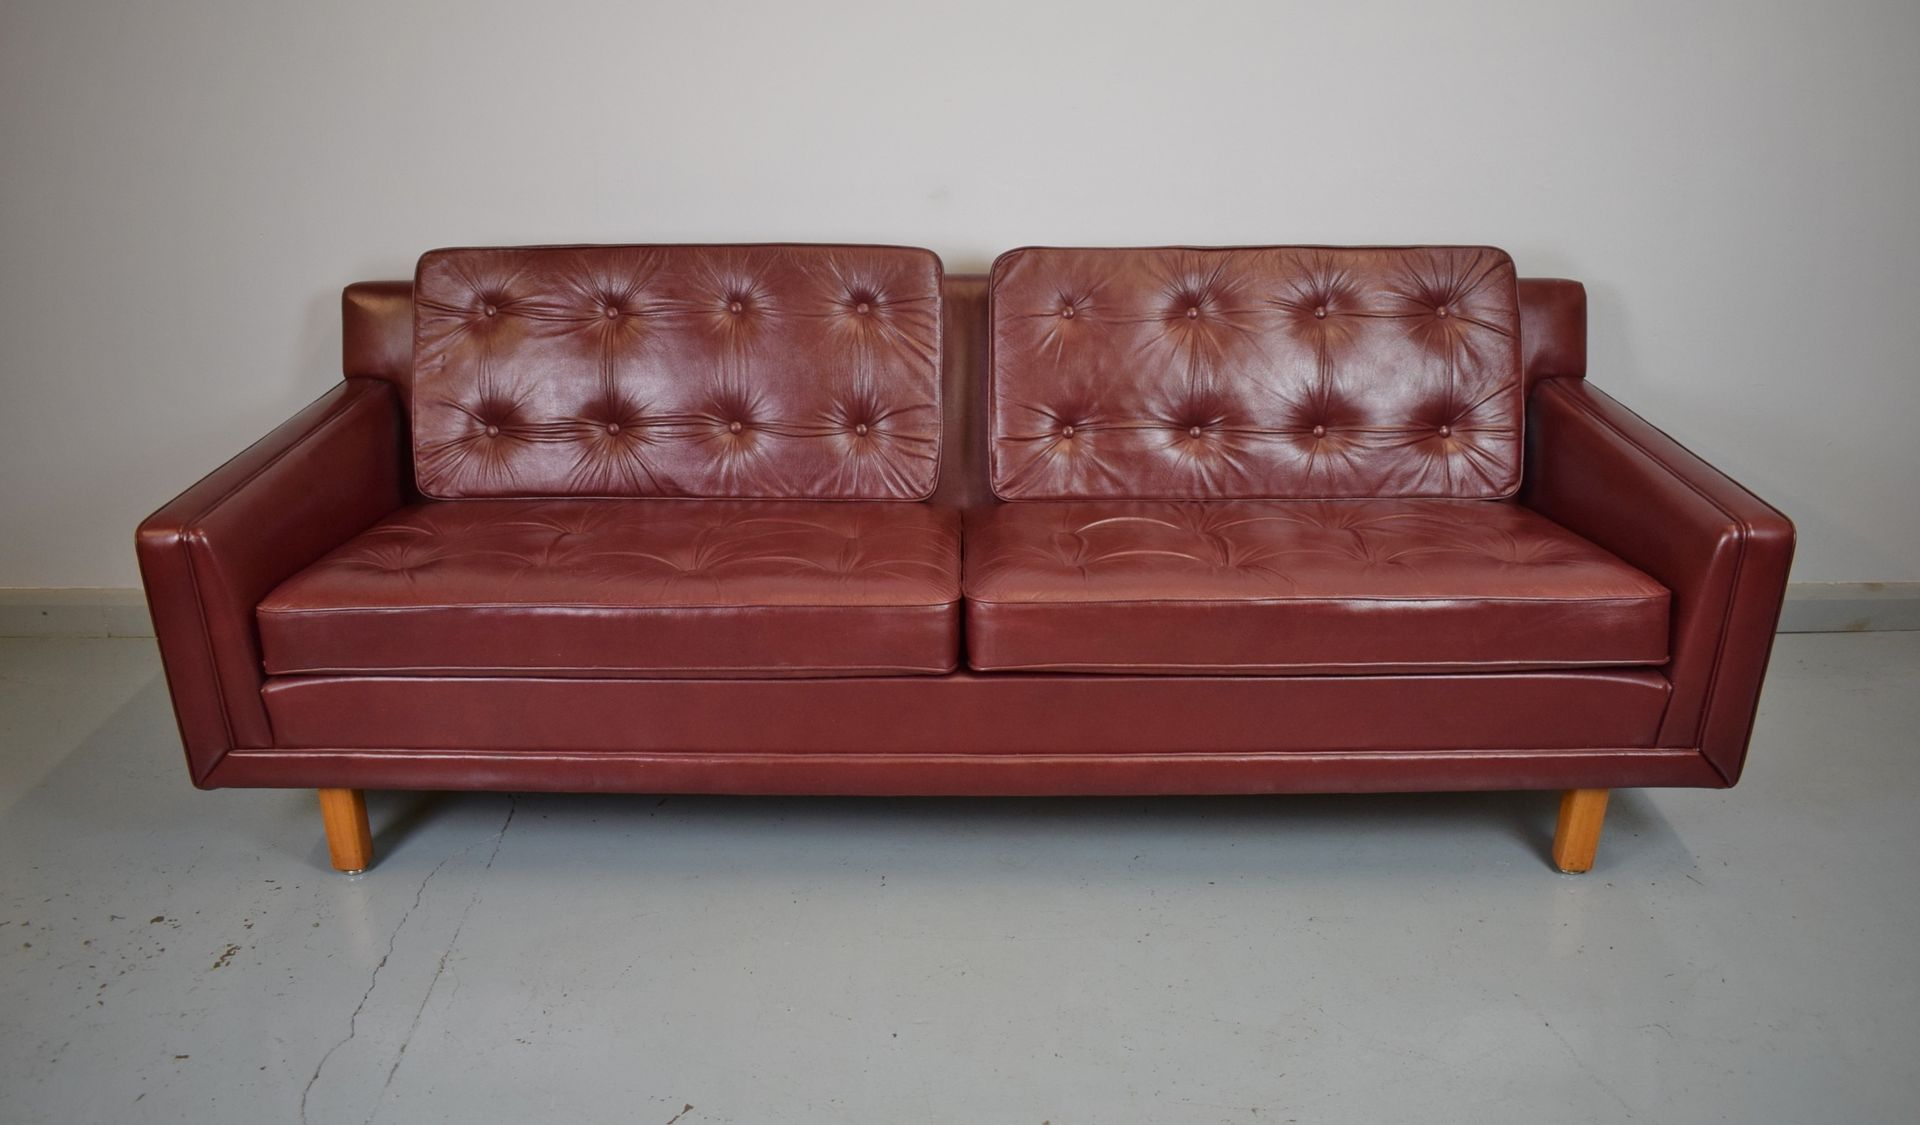 Burgundy Leather Sofa Slumberland Gallery Collection Burgundy Sofa